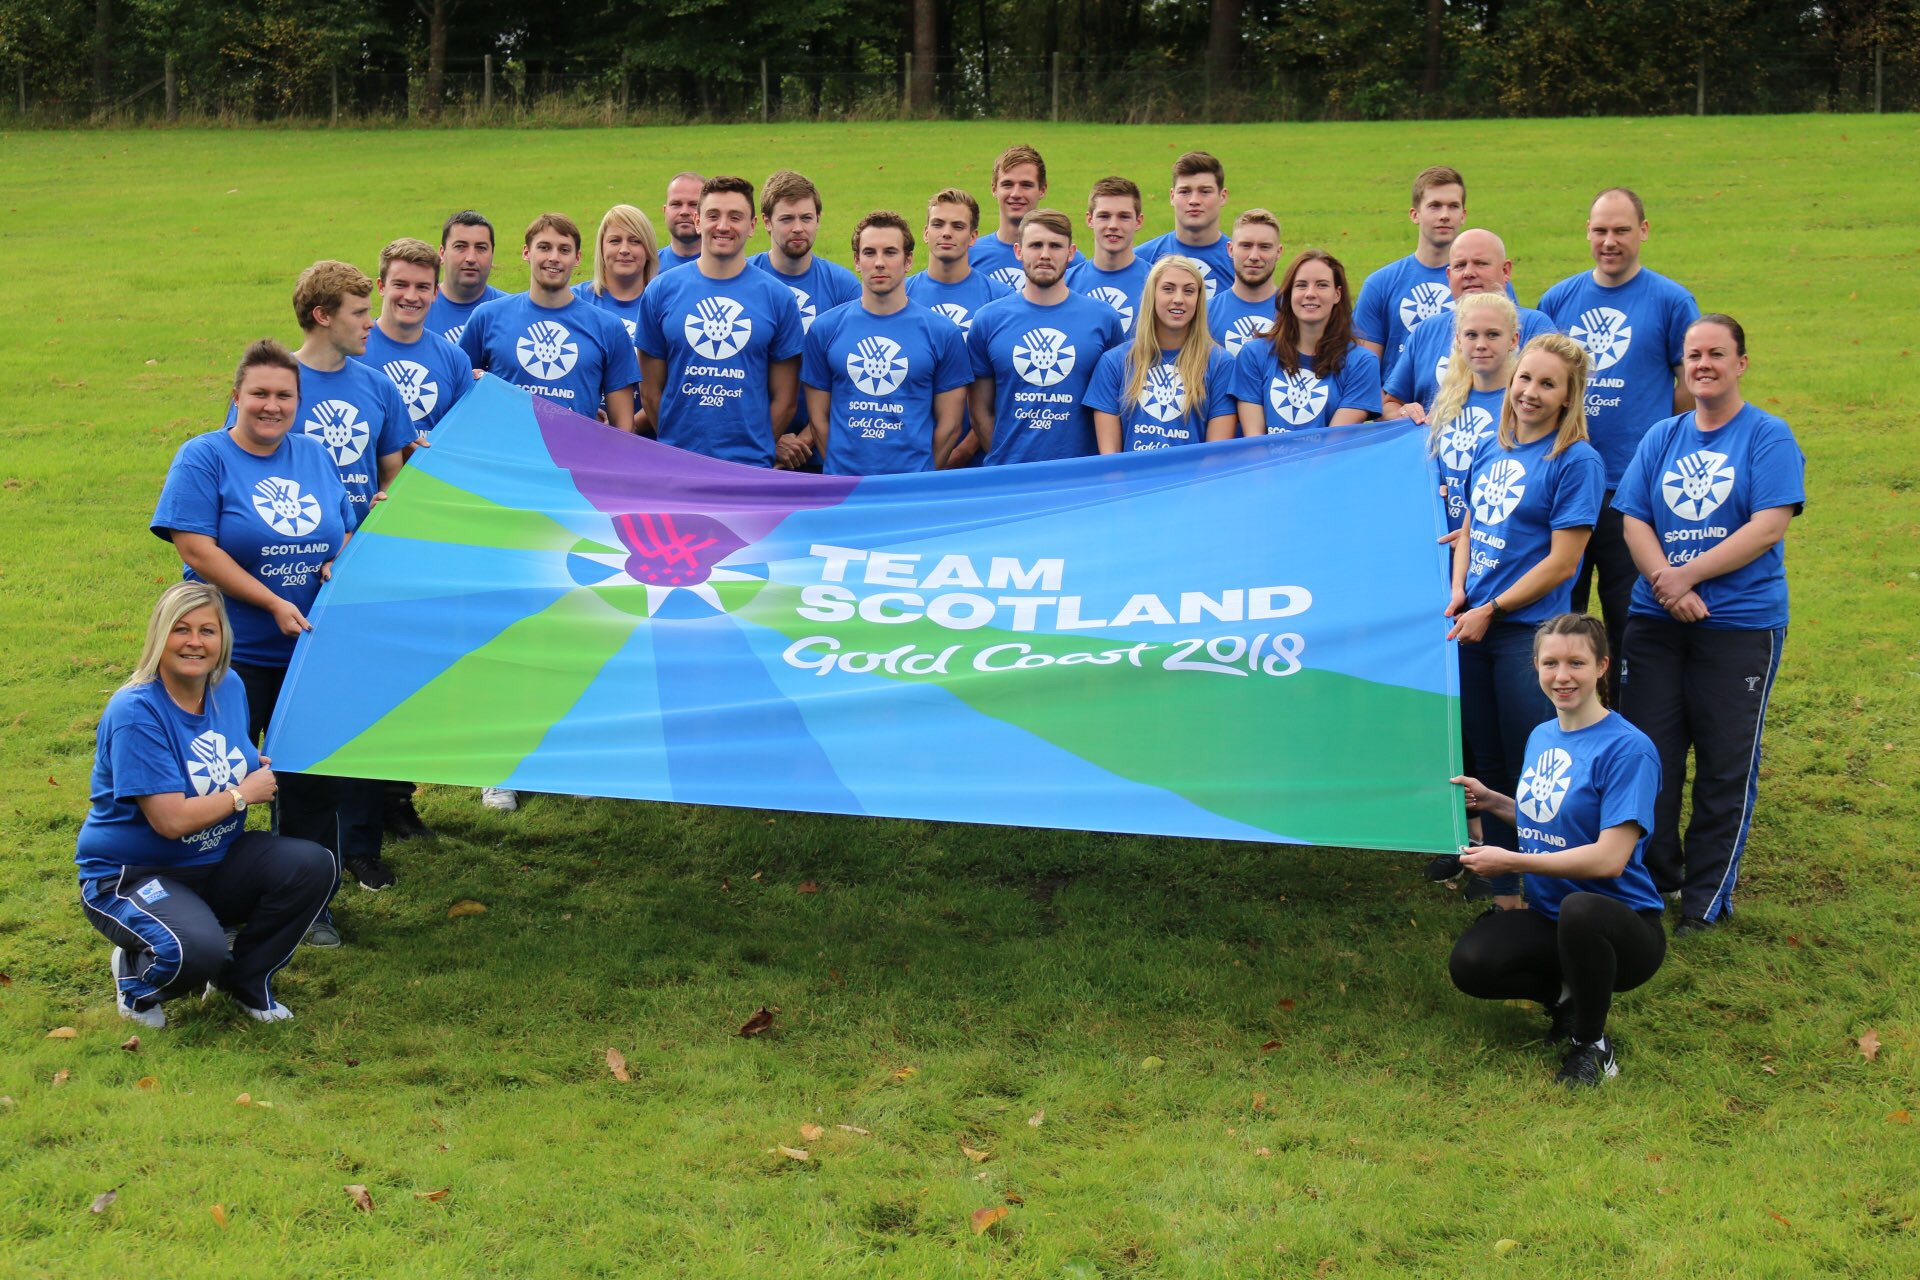 Scotland have announced their first team members for the Gold Coast 2018 Commonwealth Games ©Commonwealth Games Scotland